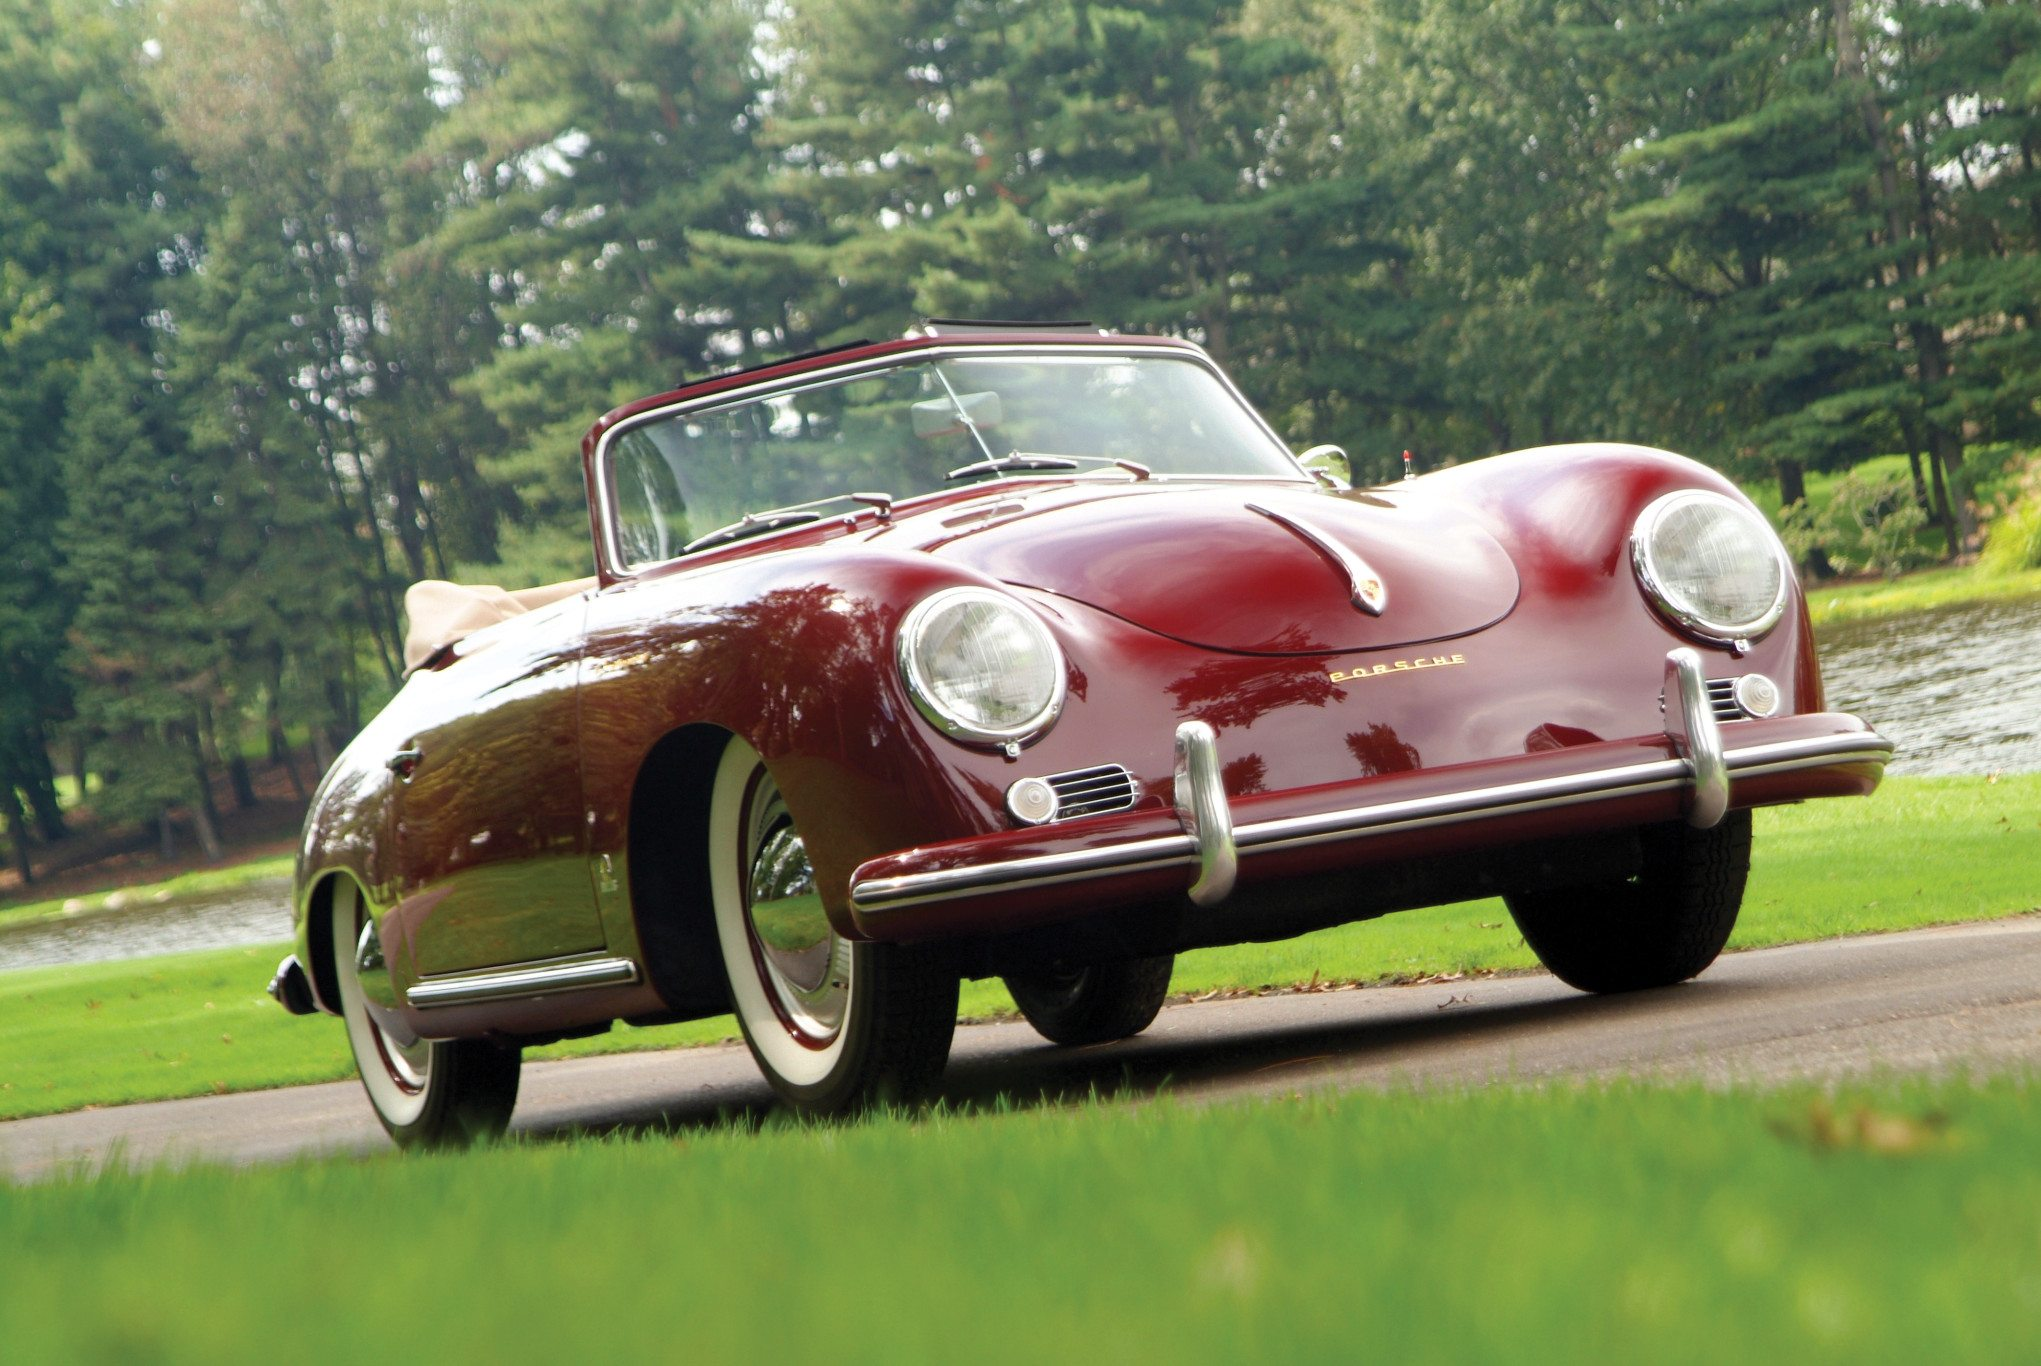 1955 Porsche 356 Continental The Grand Dame Of Zuffenhausens 1953 Lincoln Convertible Coupes And Cabriolets Wore Nameplates On Front Fenders This Was Done At Request Importer Max Hoffman Who Insisted